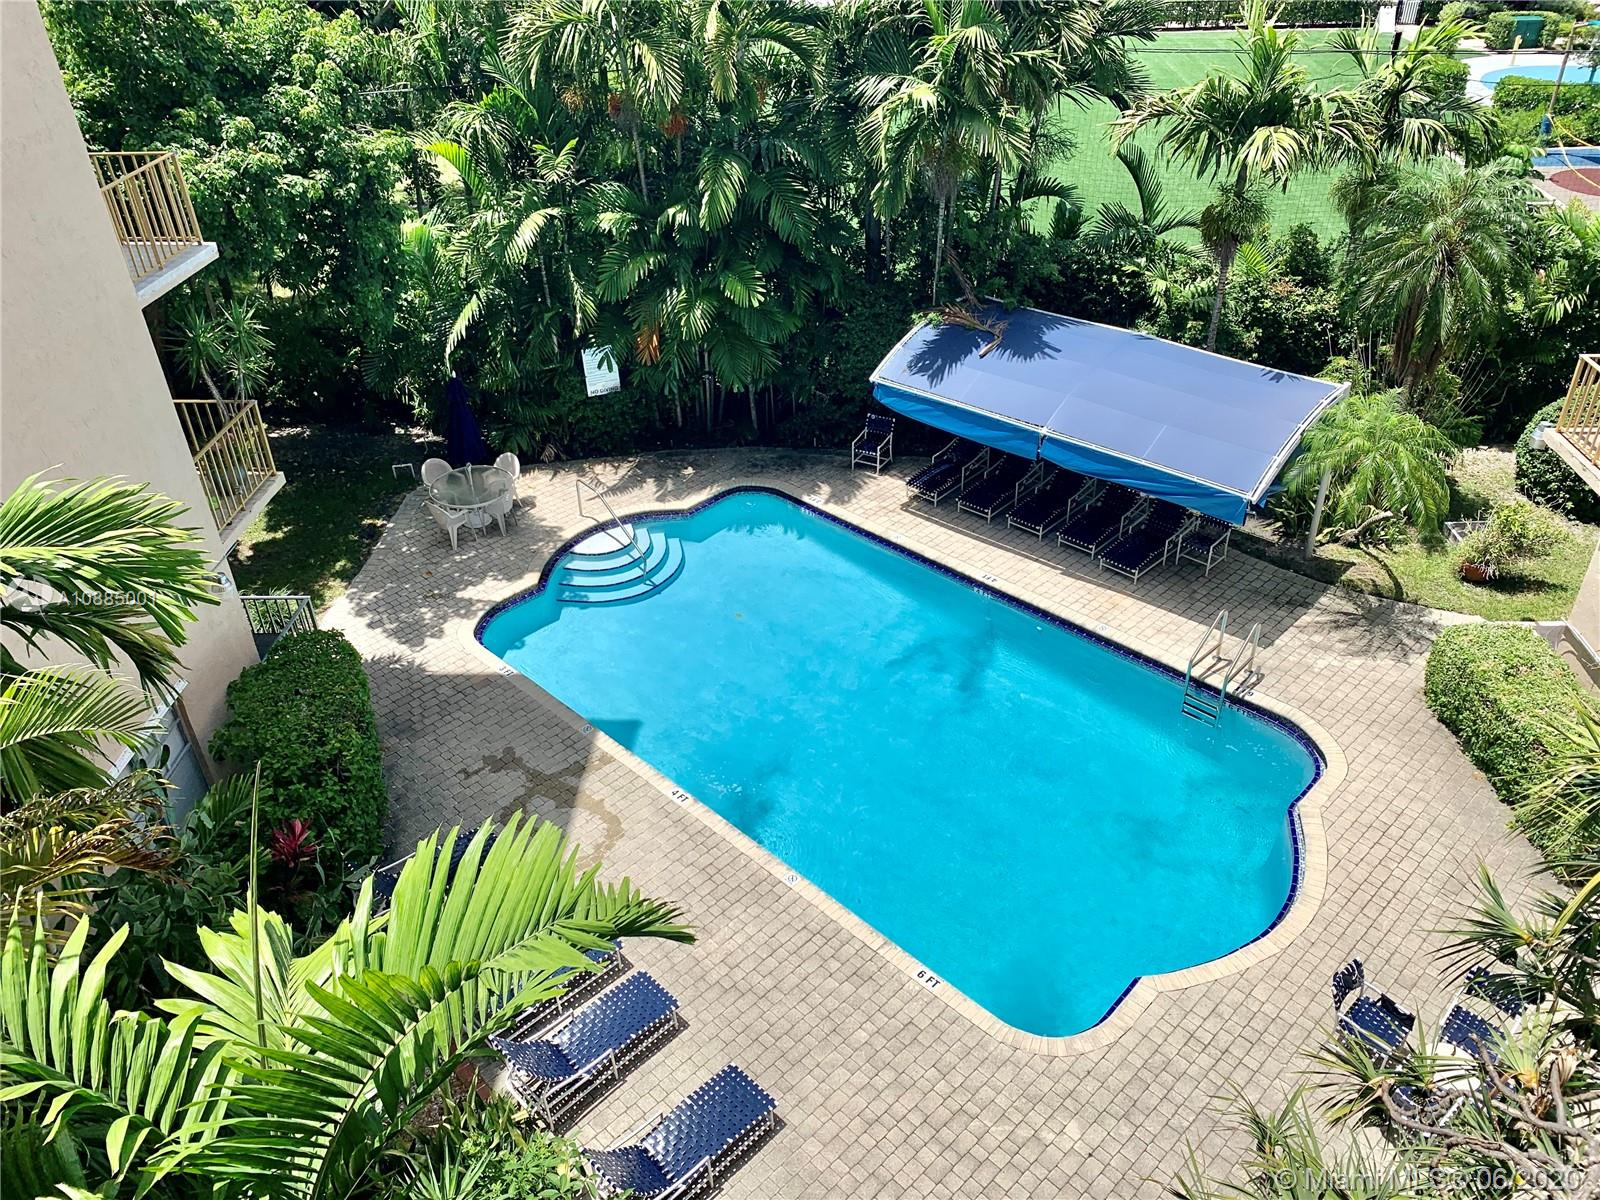 Beautiful & immaculate corner unit at The Club of Bay Harbor. The unit is a 1 bed + DEN/1.5 bath. Conveniently located on the same floor as the laundry room. Has an open balcony overlooking the gorgeous Bay Harbor Islands. Building has a pool, guest bathrooms next to the pool, BBQ area, a clubroom for residents to use, 1 assigned parking, 1 storage room, a lobby, & plenty of parking for additional cars & guests. The building has friendly neighbors & environment. Short walk to A rated schools, shopping, restaurants, & religious institutions. Highly sought after area. Currently rented at $1,450 a month to wonderful tenants month-to-month. They are willing to sign a lease if Buyer would like. 2 year rental restriction upon purchase but after that you can rent it once a year. Pets are welcome.